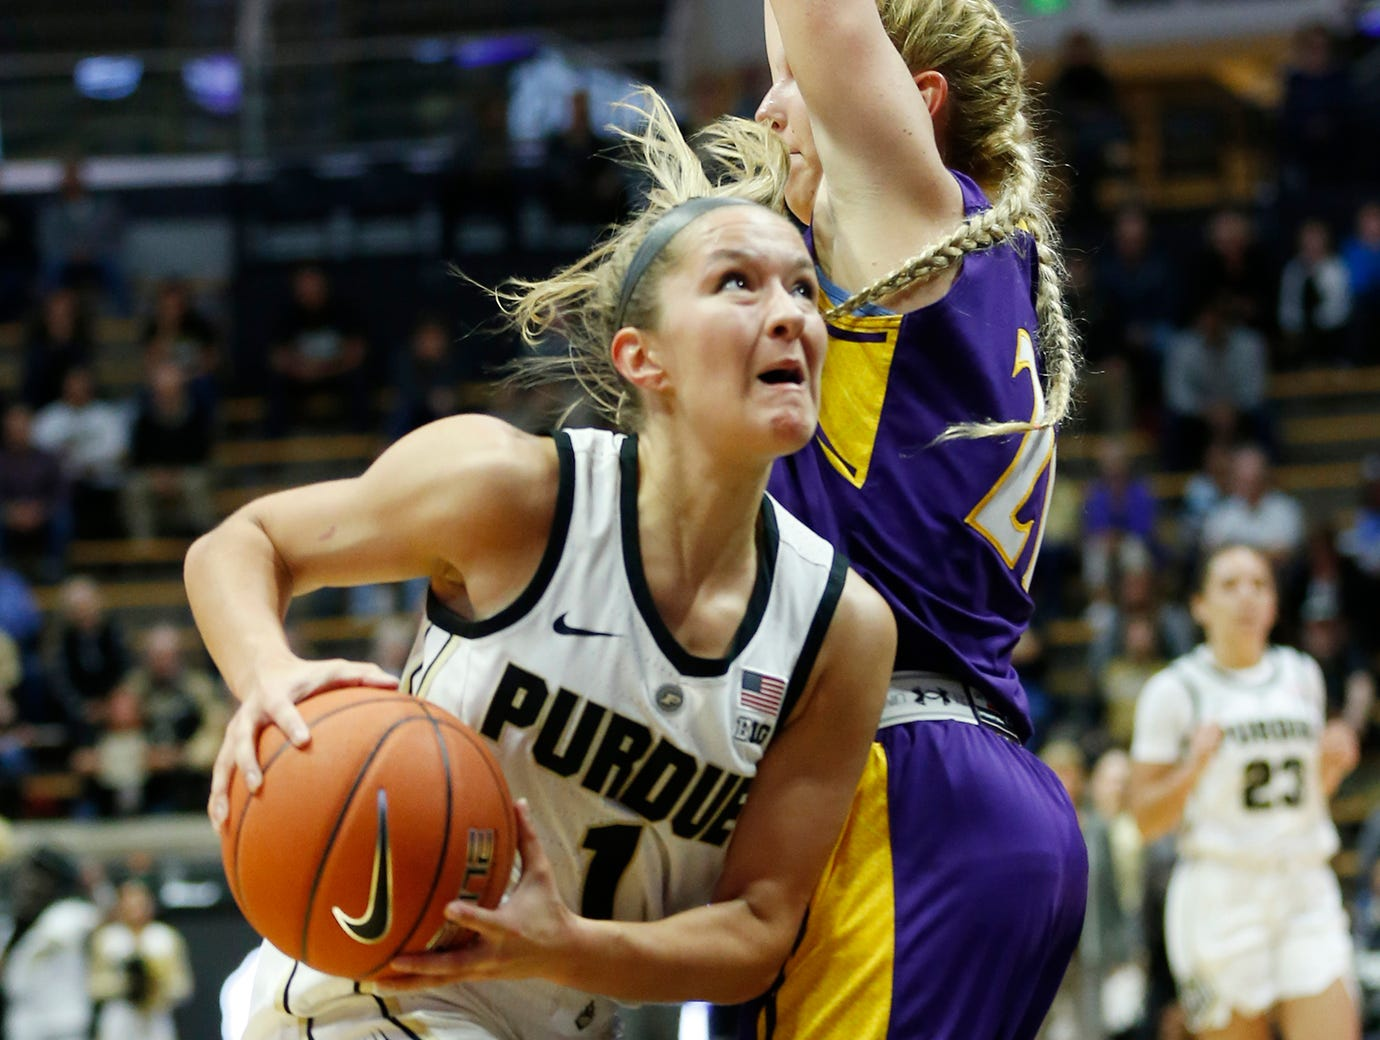 Karissa McLaughlin of Purdue with a drive to the basket around Jodi Johnson of Ashland Sunday, November 4, 2018, at Mackey Arena. Purdue defeated Ashland 85-69.